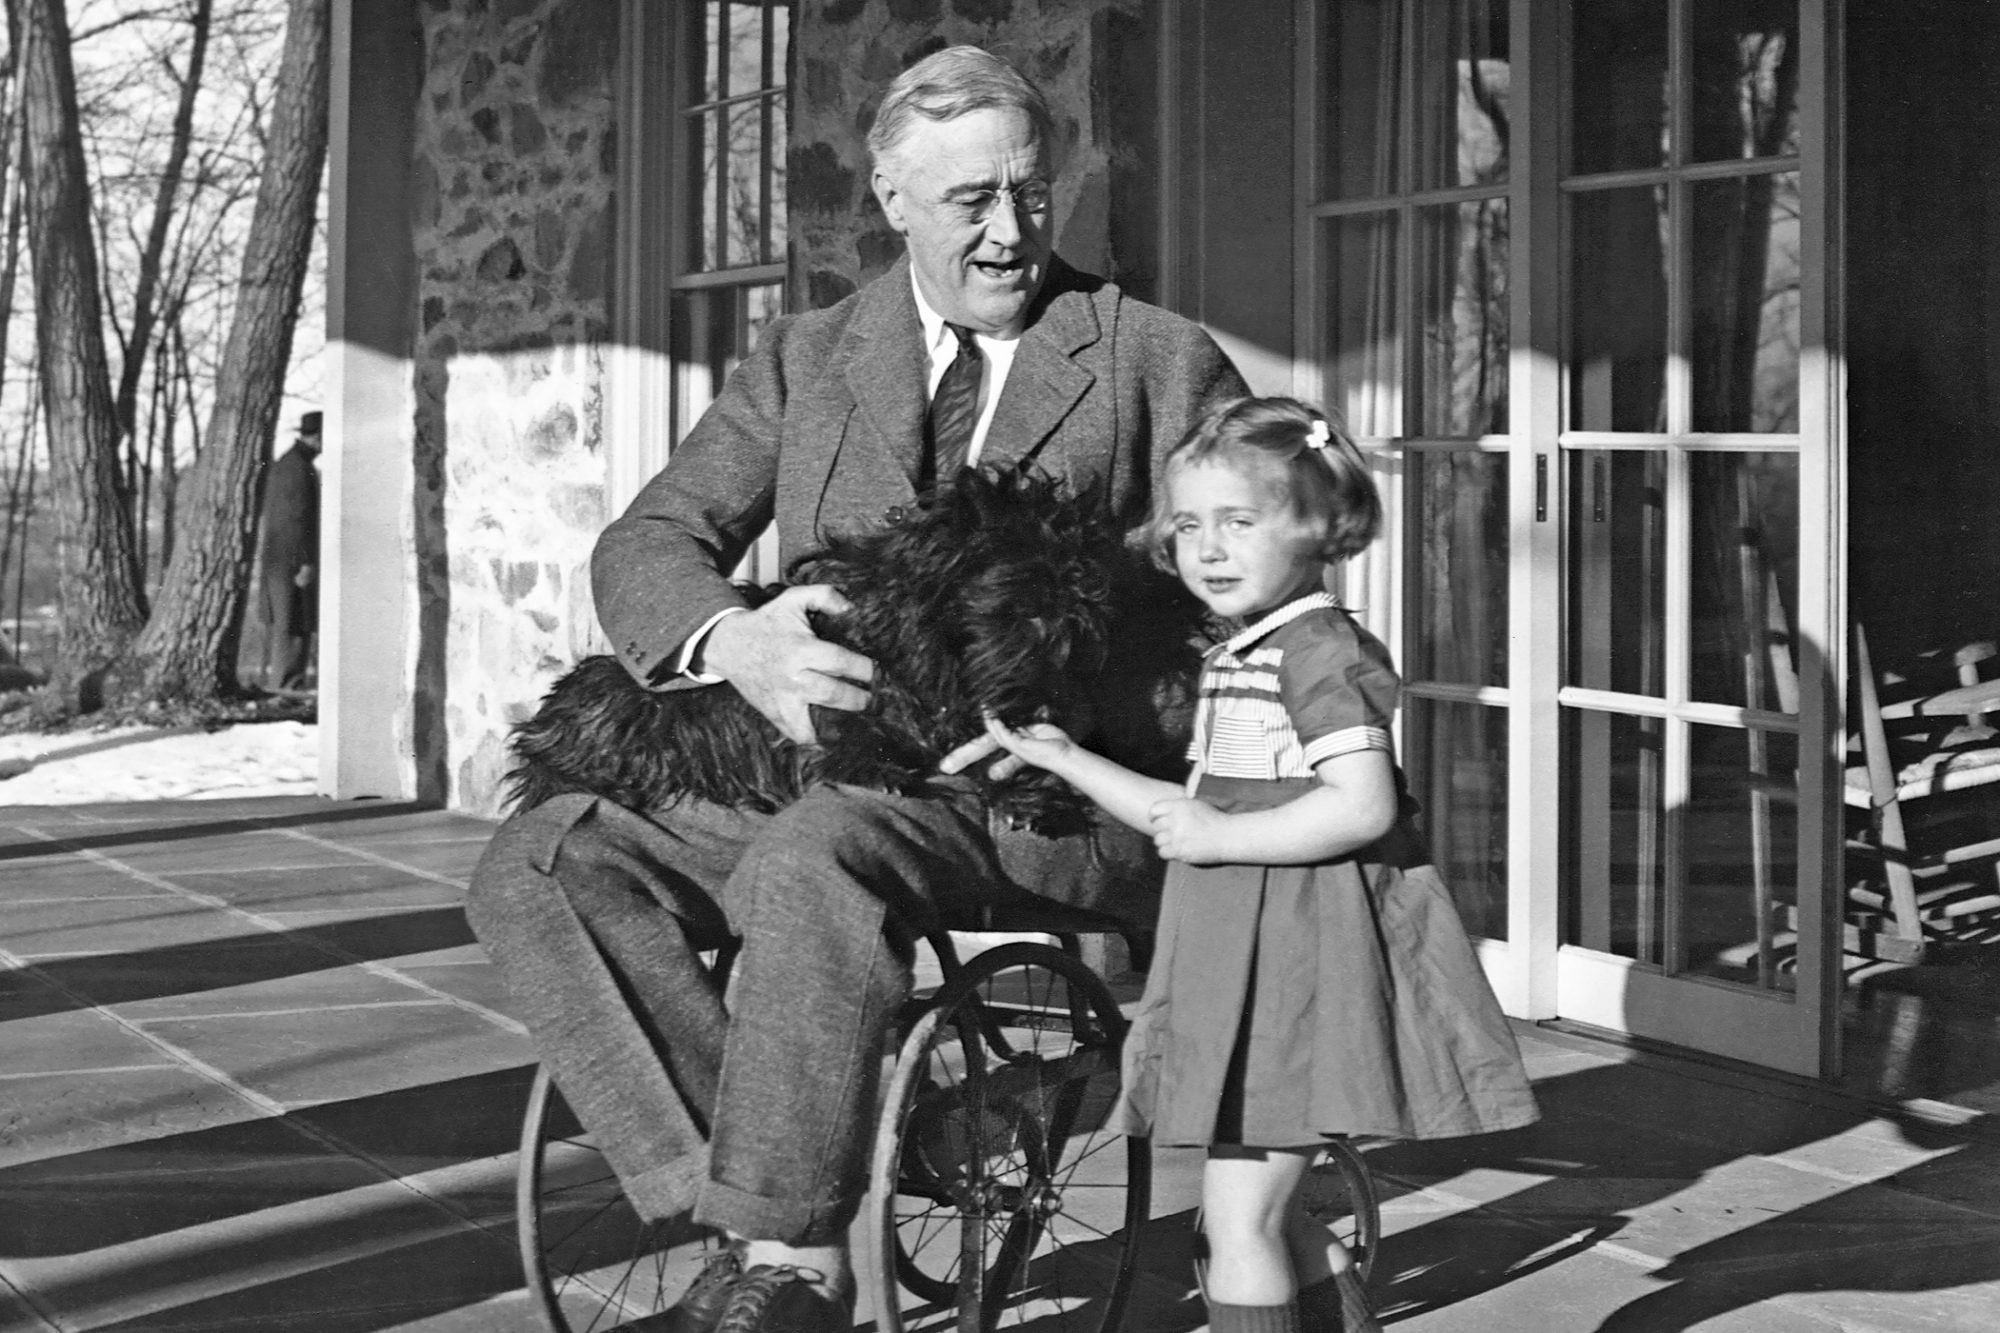 Photograph of Franklin D. Roosevelt with dog on lap and young girl standing next to him